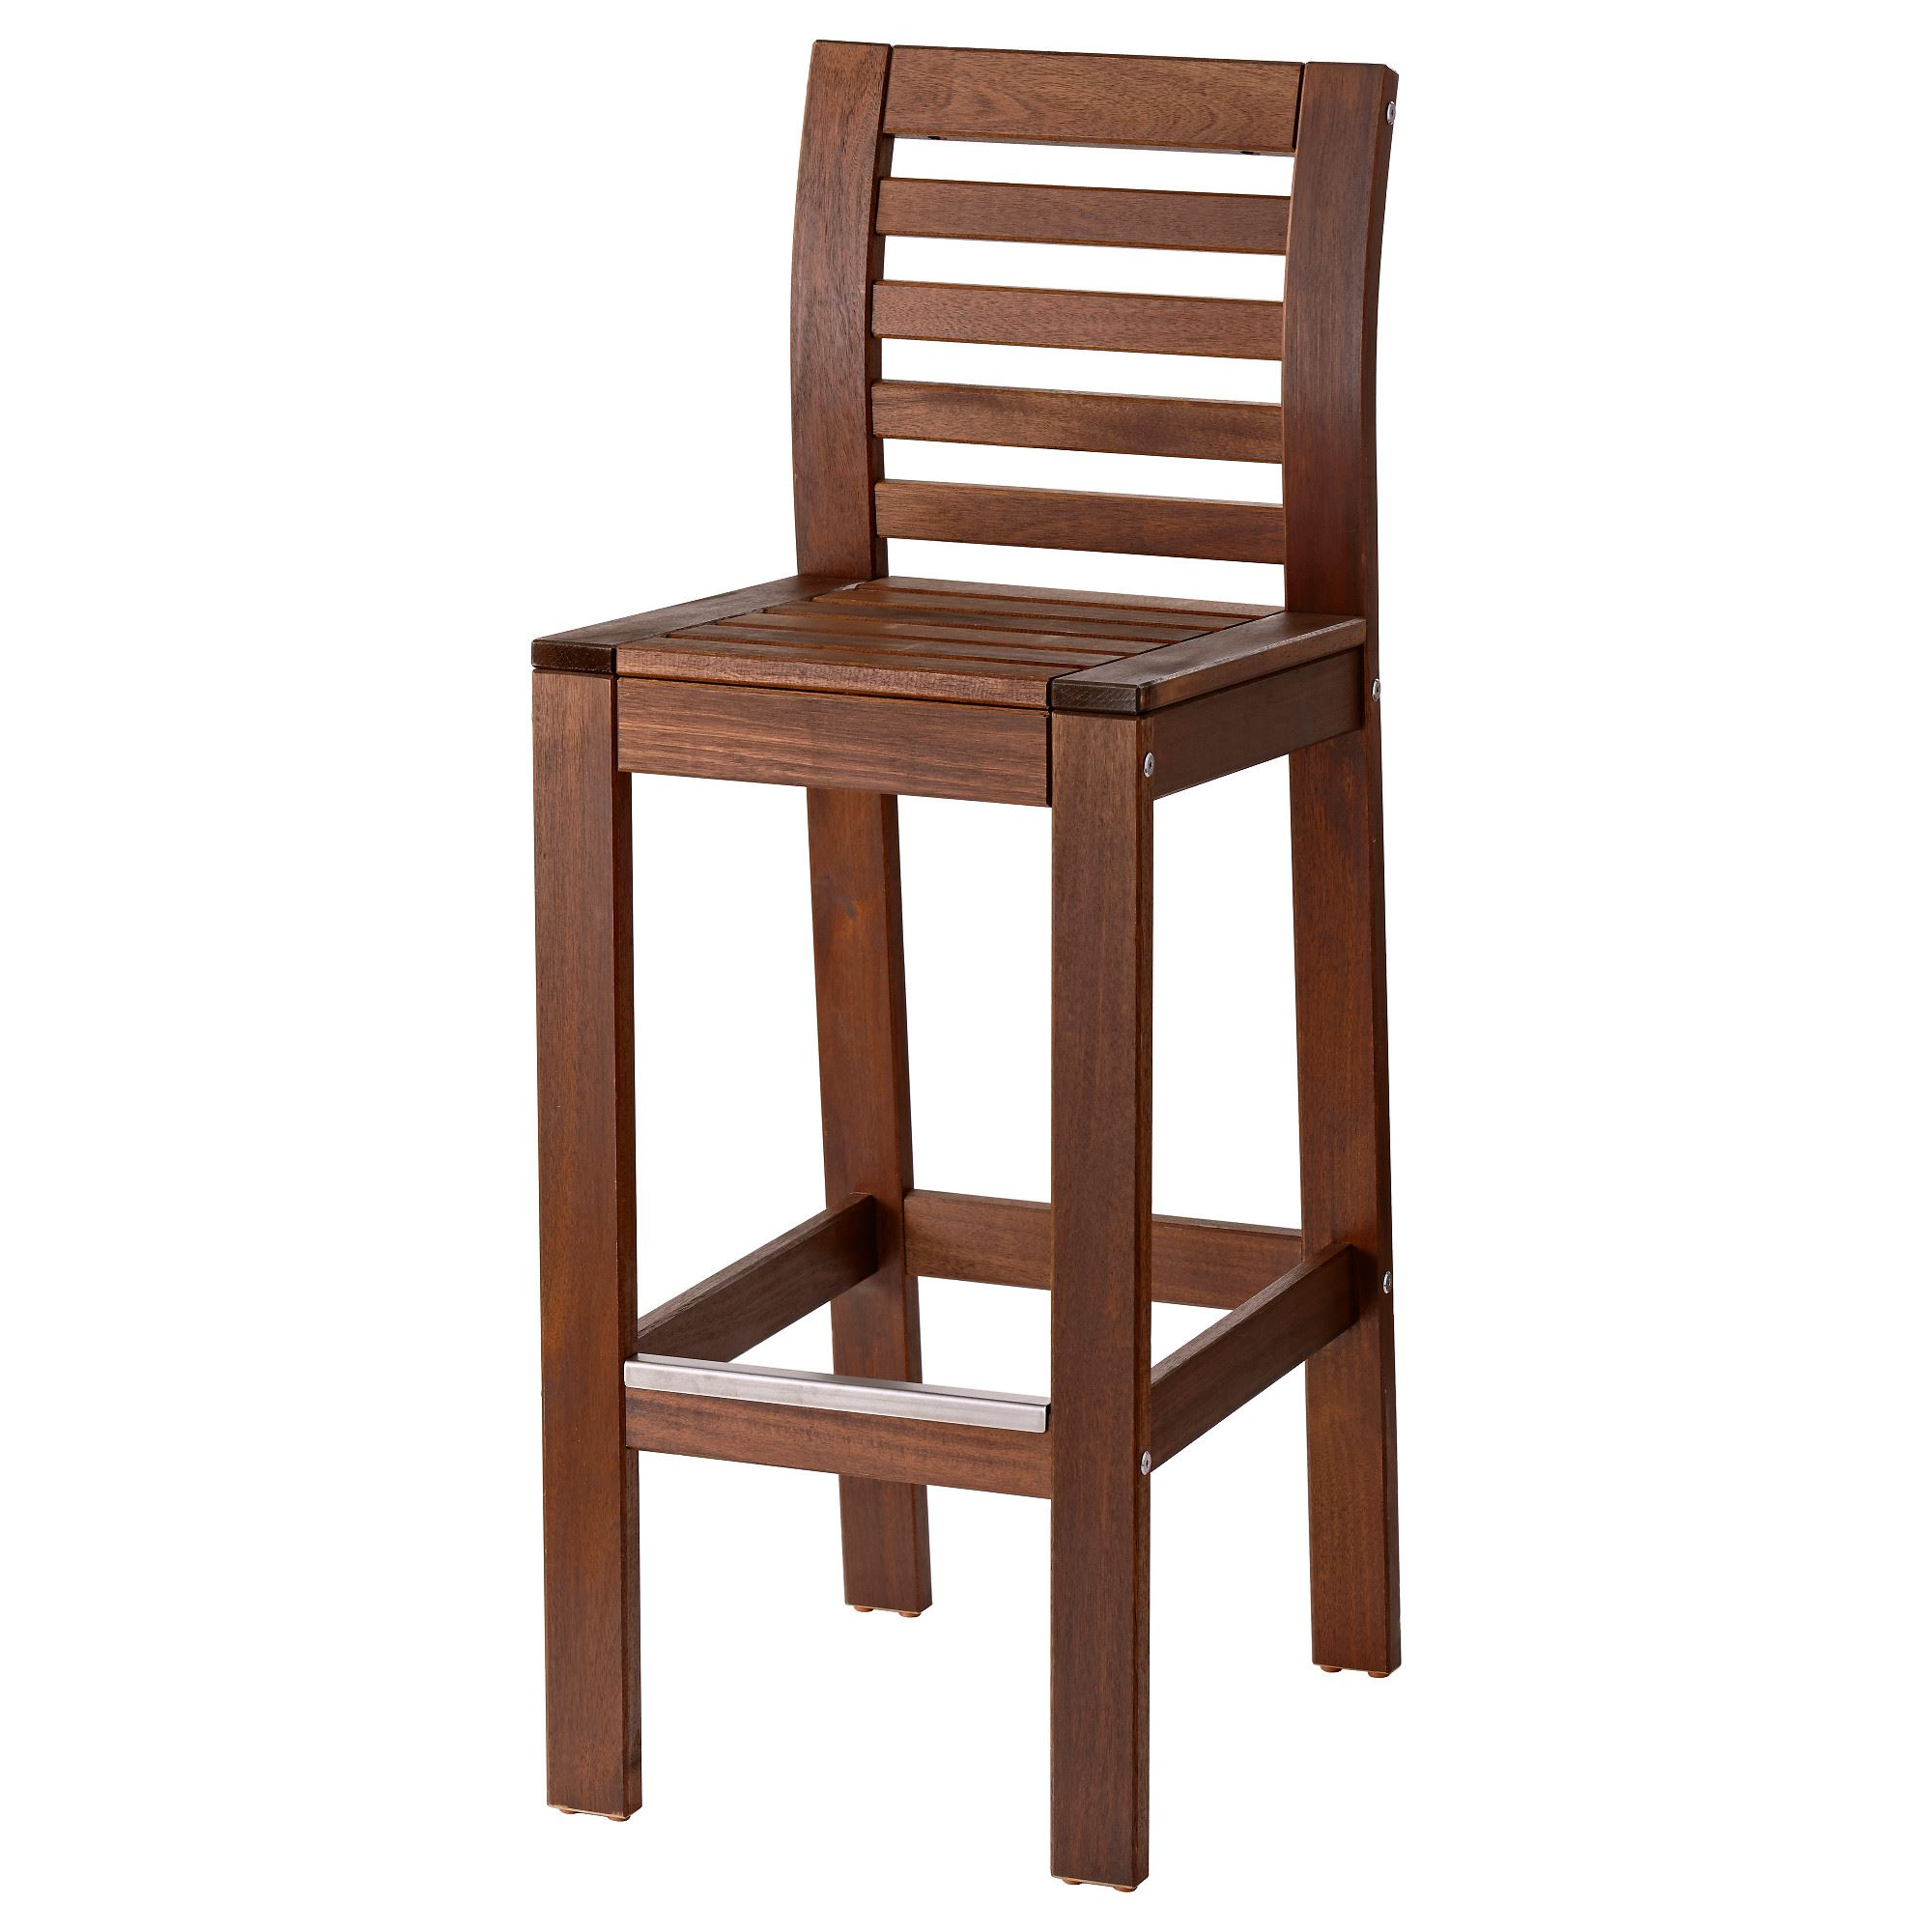 APPLAR– bar stool brown